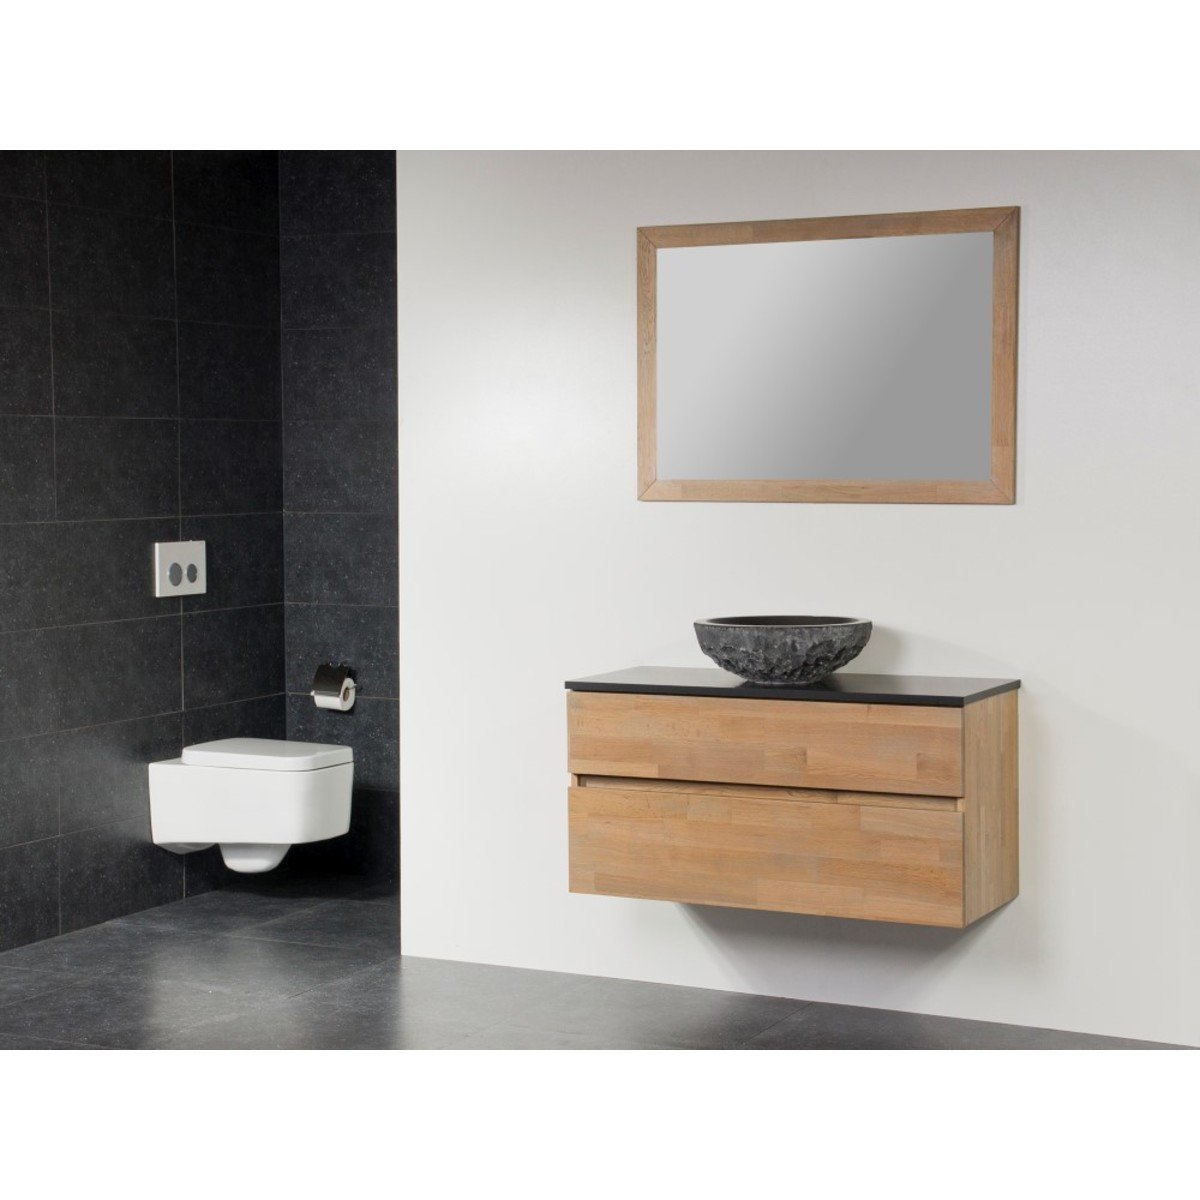 saniclass natural wood meuble salle de bain avec miroir 100cm suspendu grey wash avec vasque. Black Bedroom Furniture Sets. Home Design Ideas